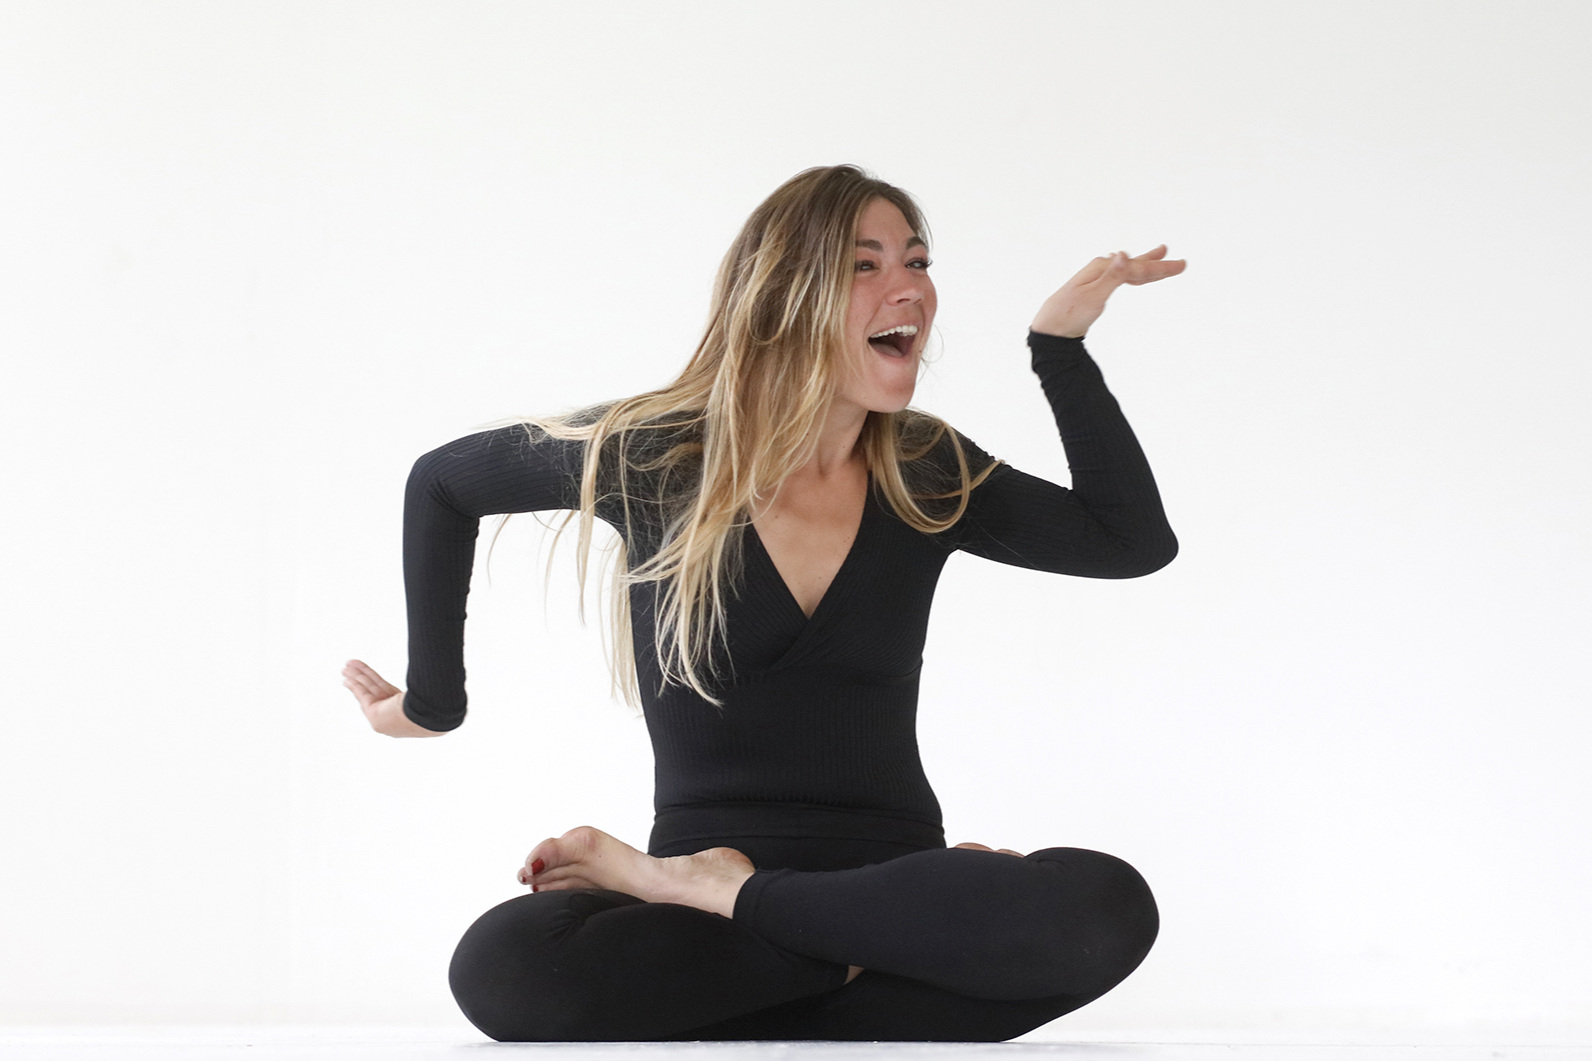 Certified 700HR Yoga Instructor - with 10 years of experience